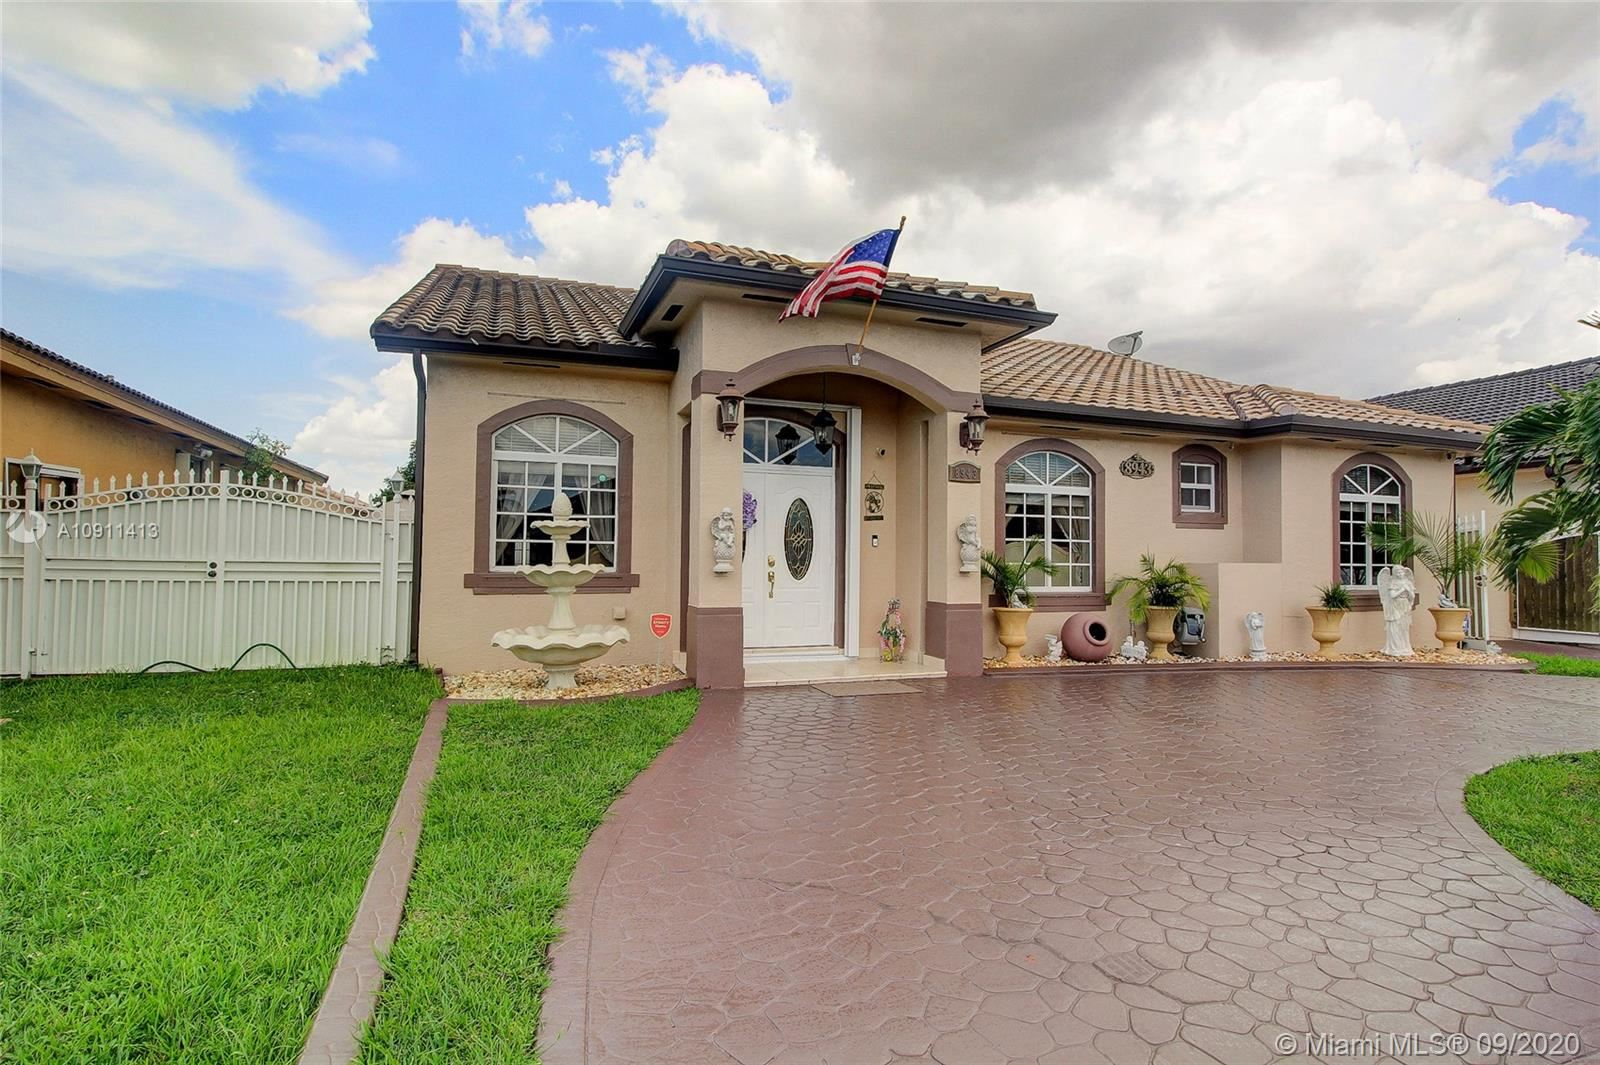 8943 NW 145th St, Miami Lakes, FL 33018 - #: A10911413